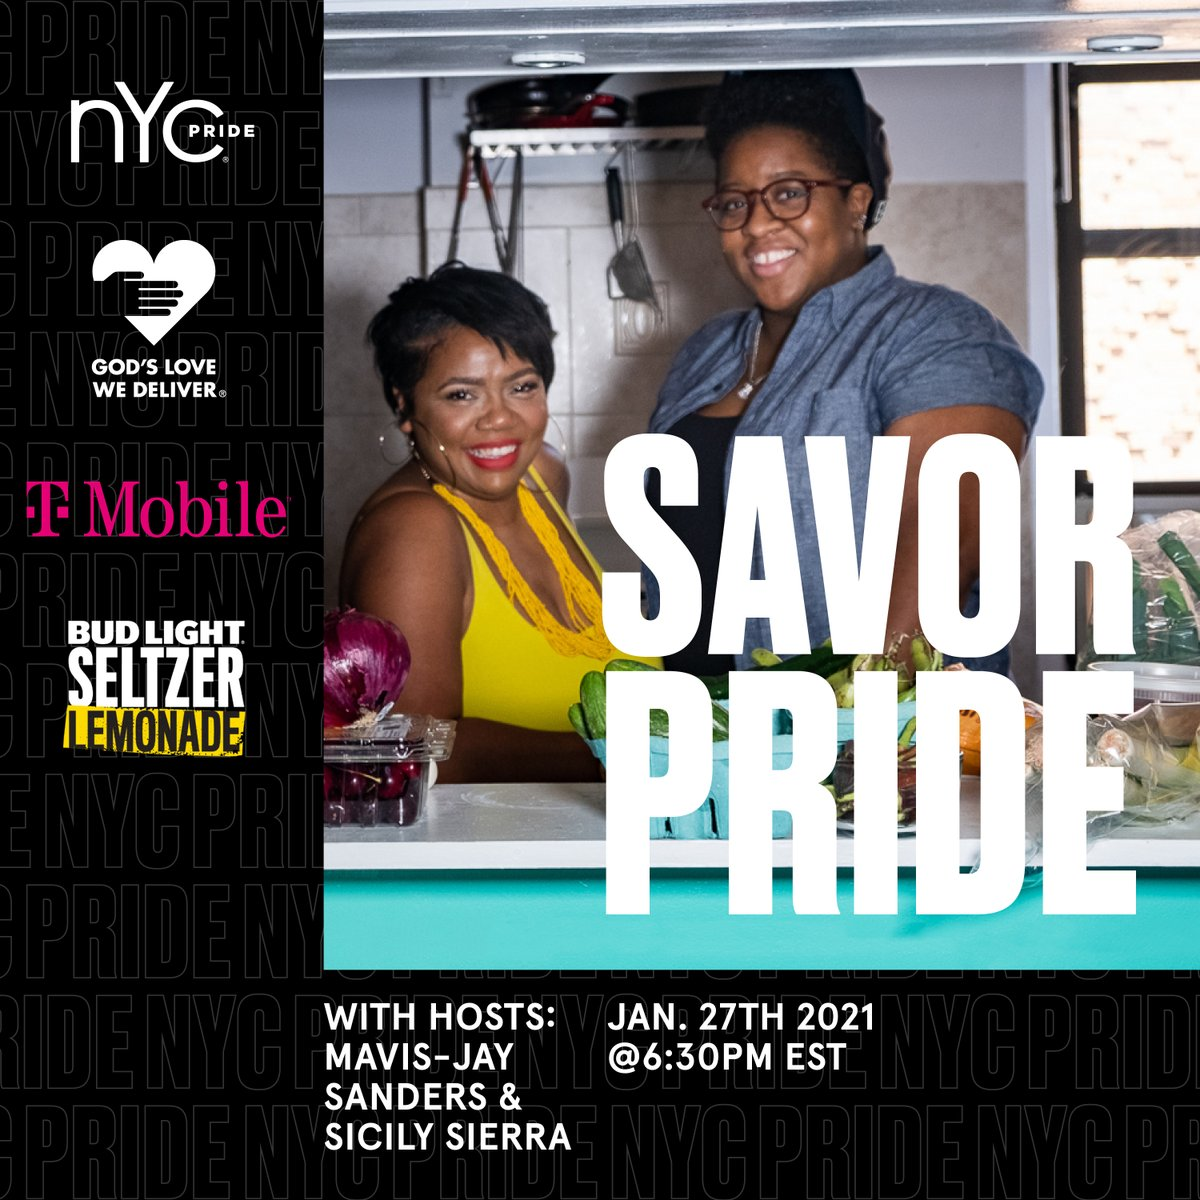 @ChefMavisJay and @SicilySierra join #SavorPride on January 27! Tickets are now available: